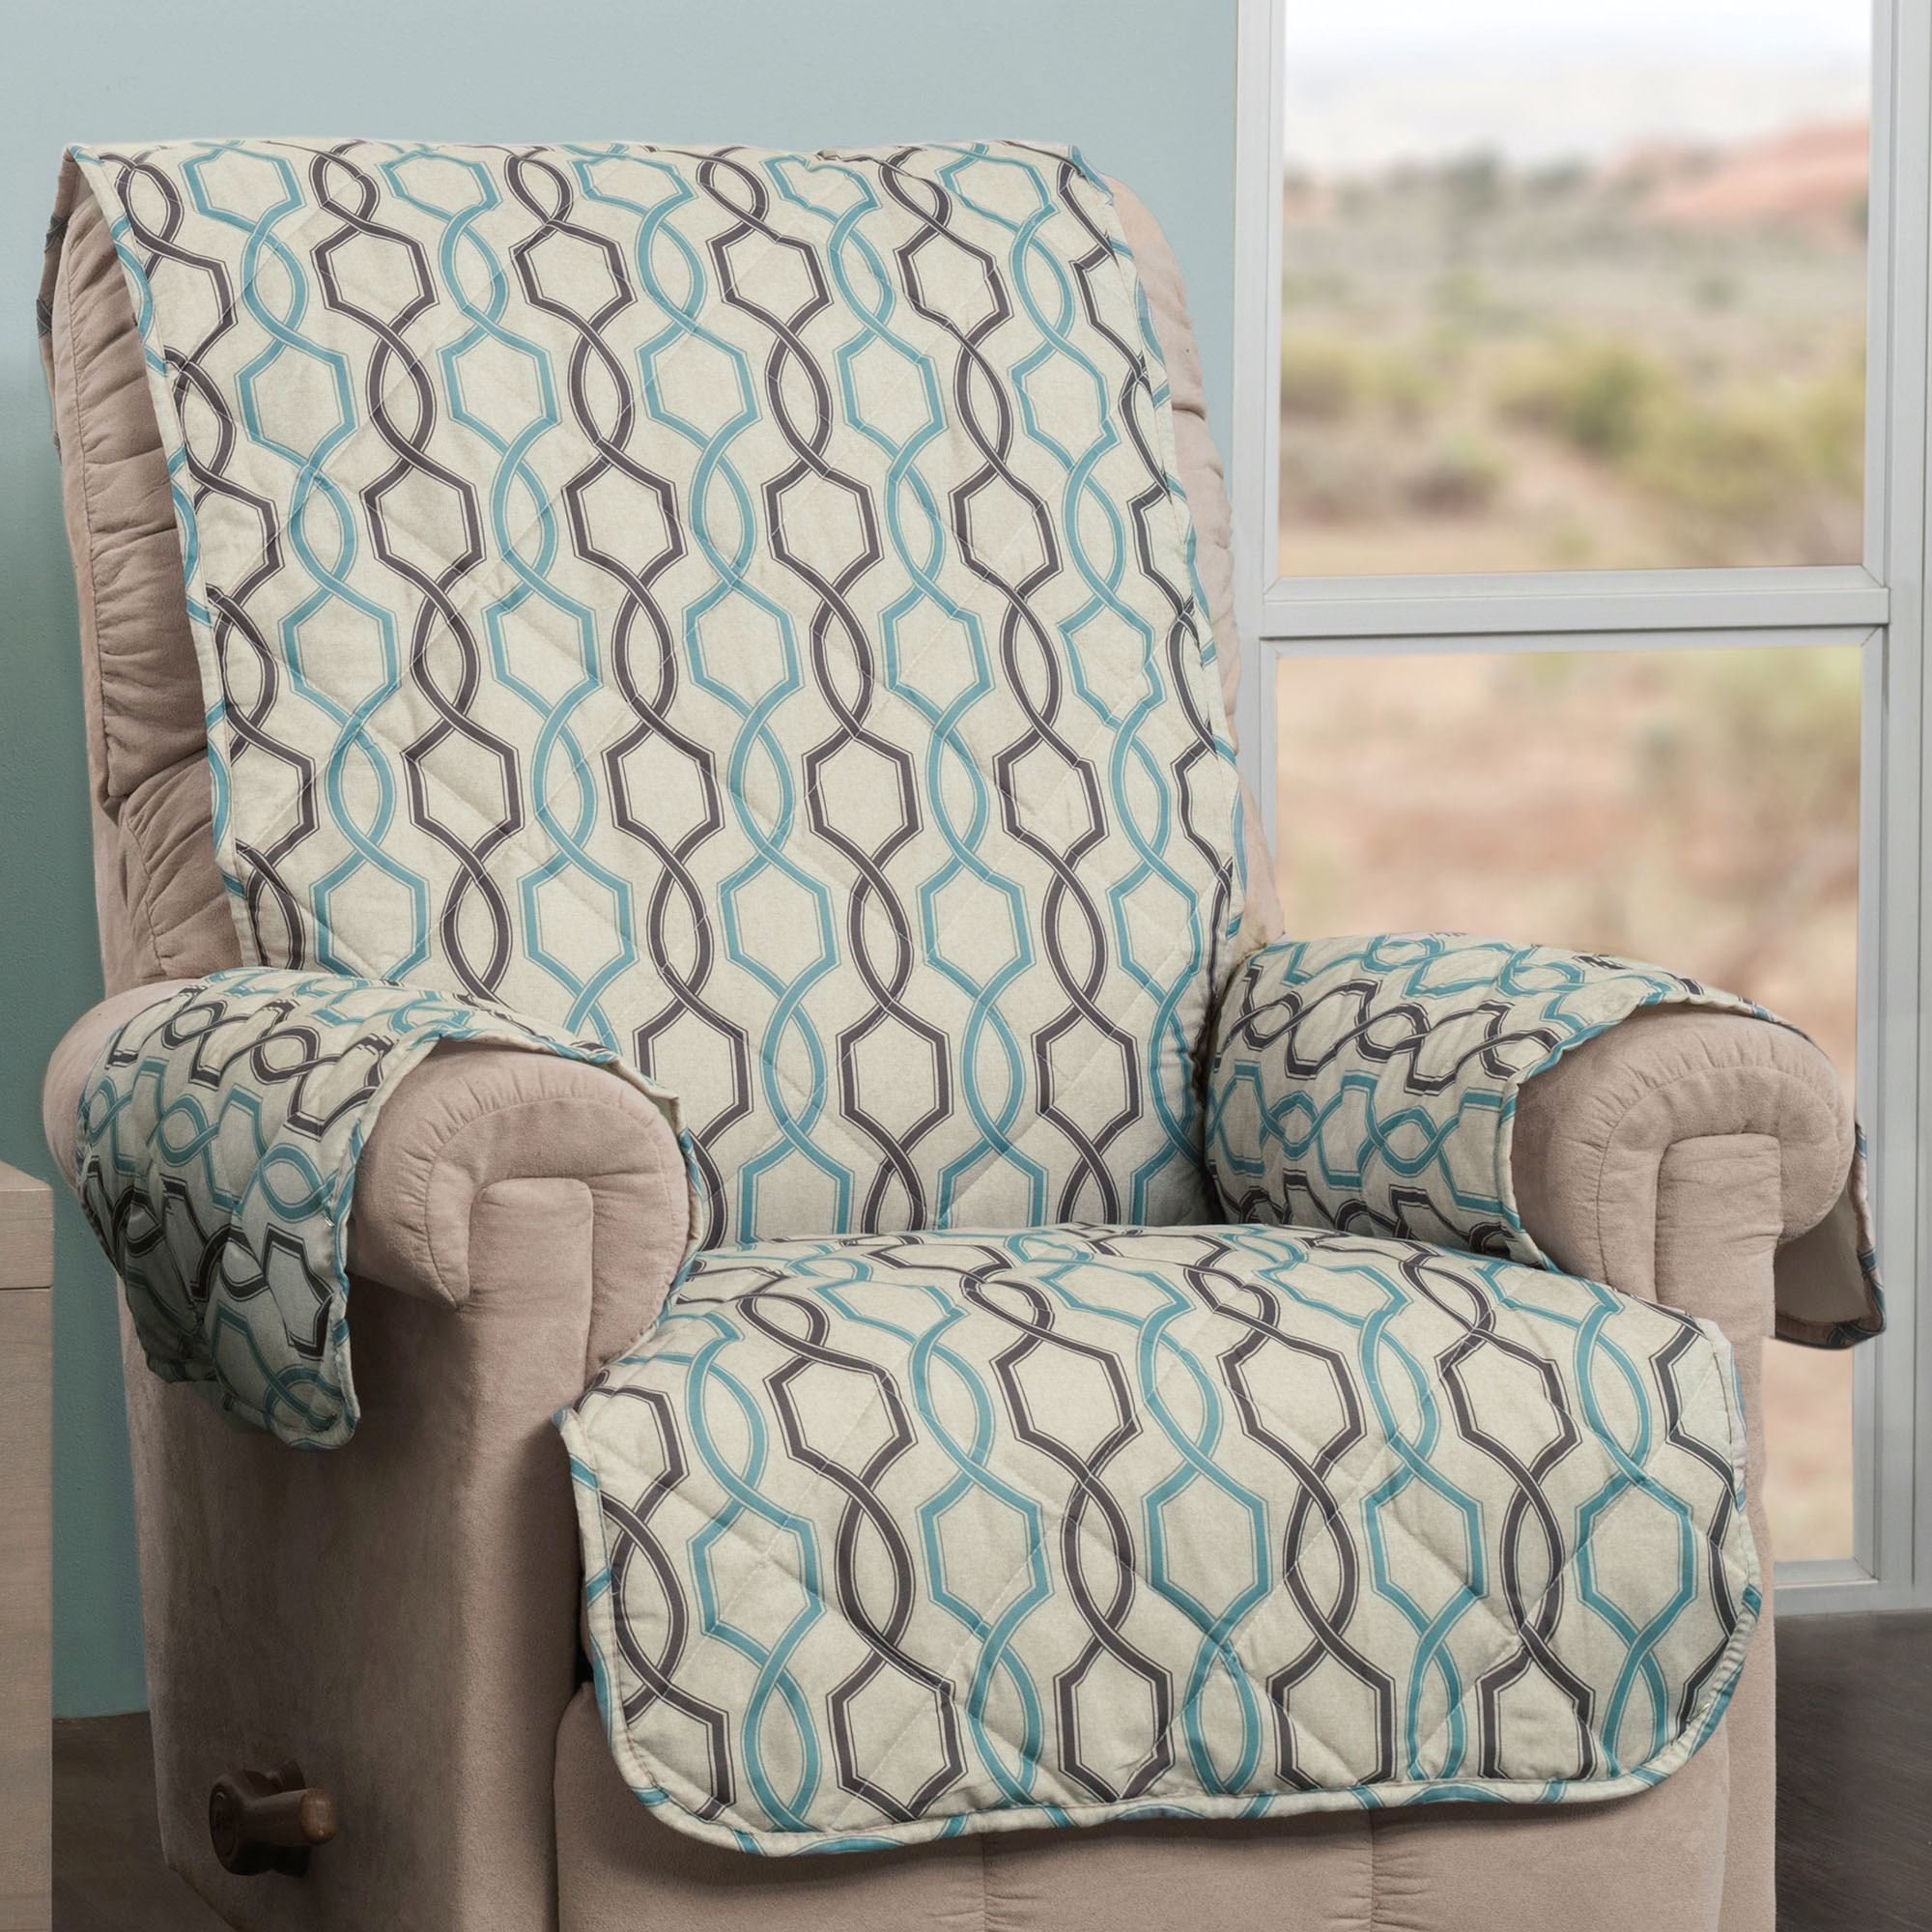 Impulsive Patterned Quilted Furniture Protectors : quilted furniture protectors - Adamdwight.com